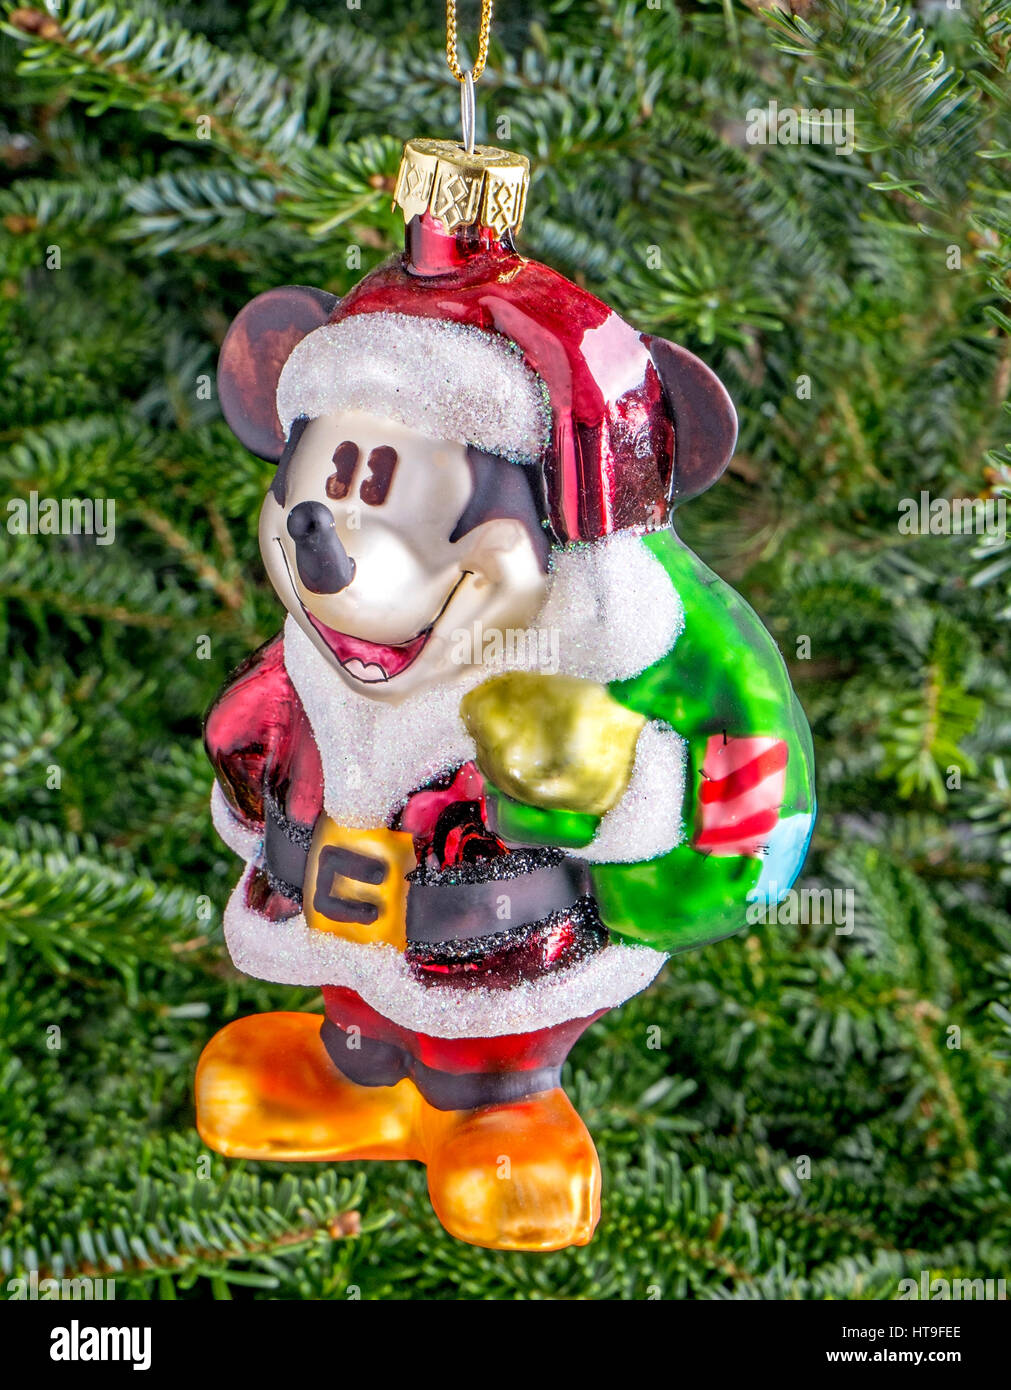 christmas bauble hanging from a tree in the shape of mickey mouse stock image